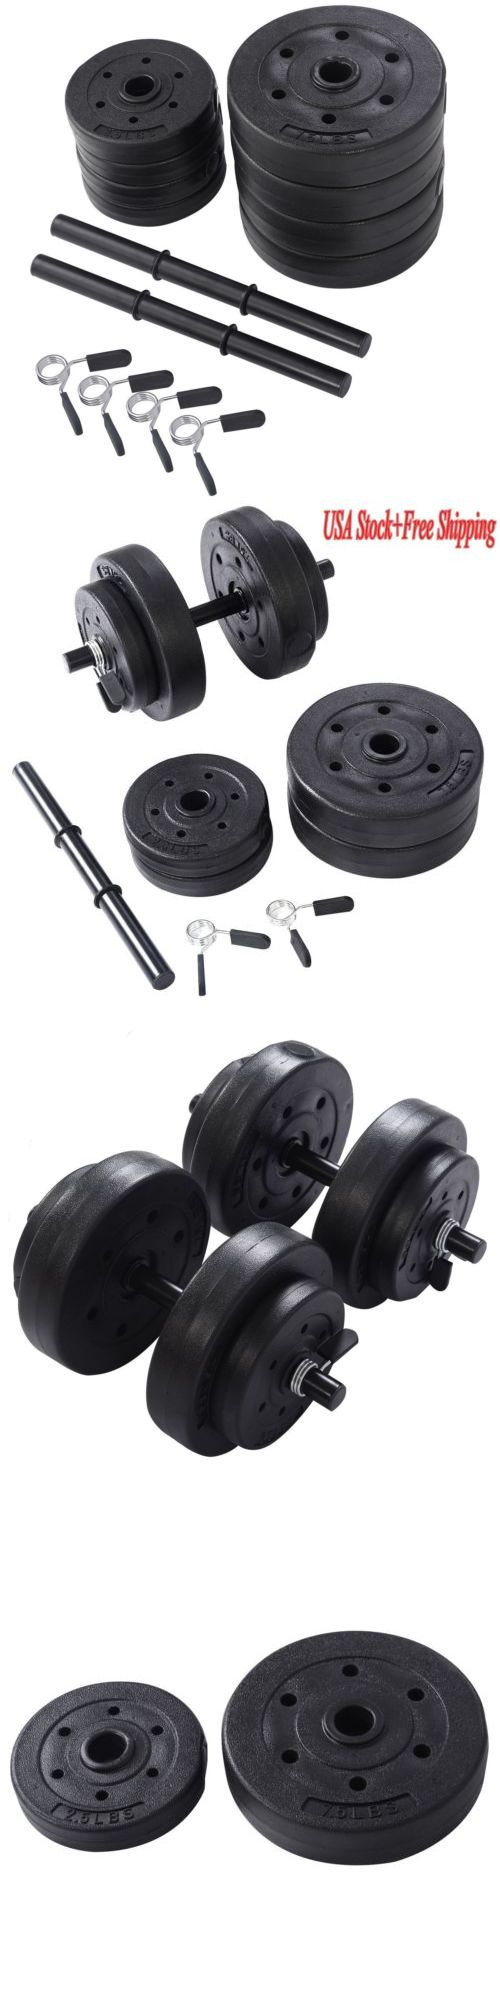 Dumbbells 137865: Adjustable Dumbbell Set 40 Lb Weight Cap Gym Barbell Plates Body Workout Black -> BUY IT NOW ONLY: $37.99 on eBay!